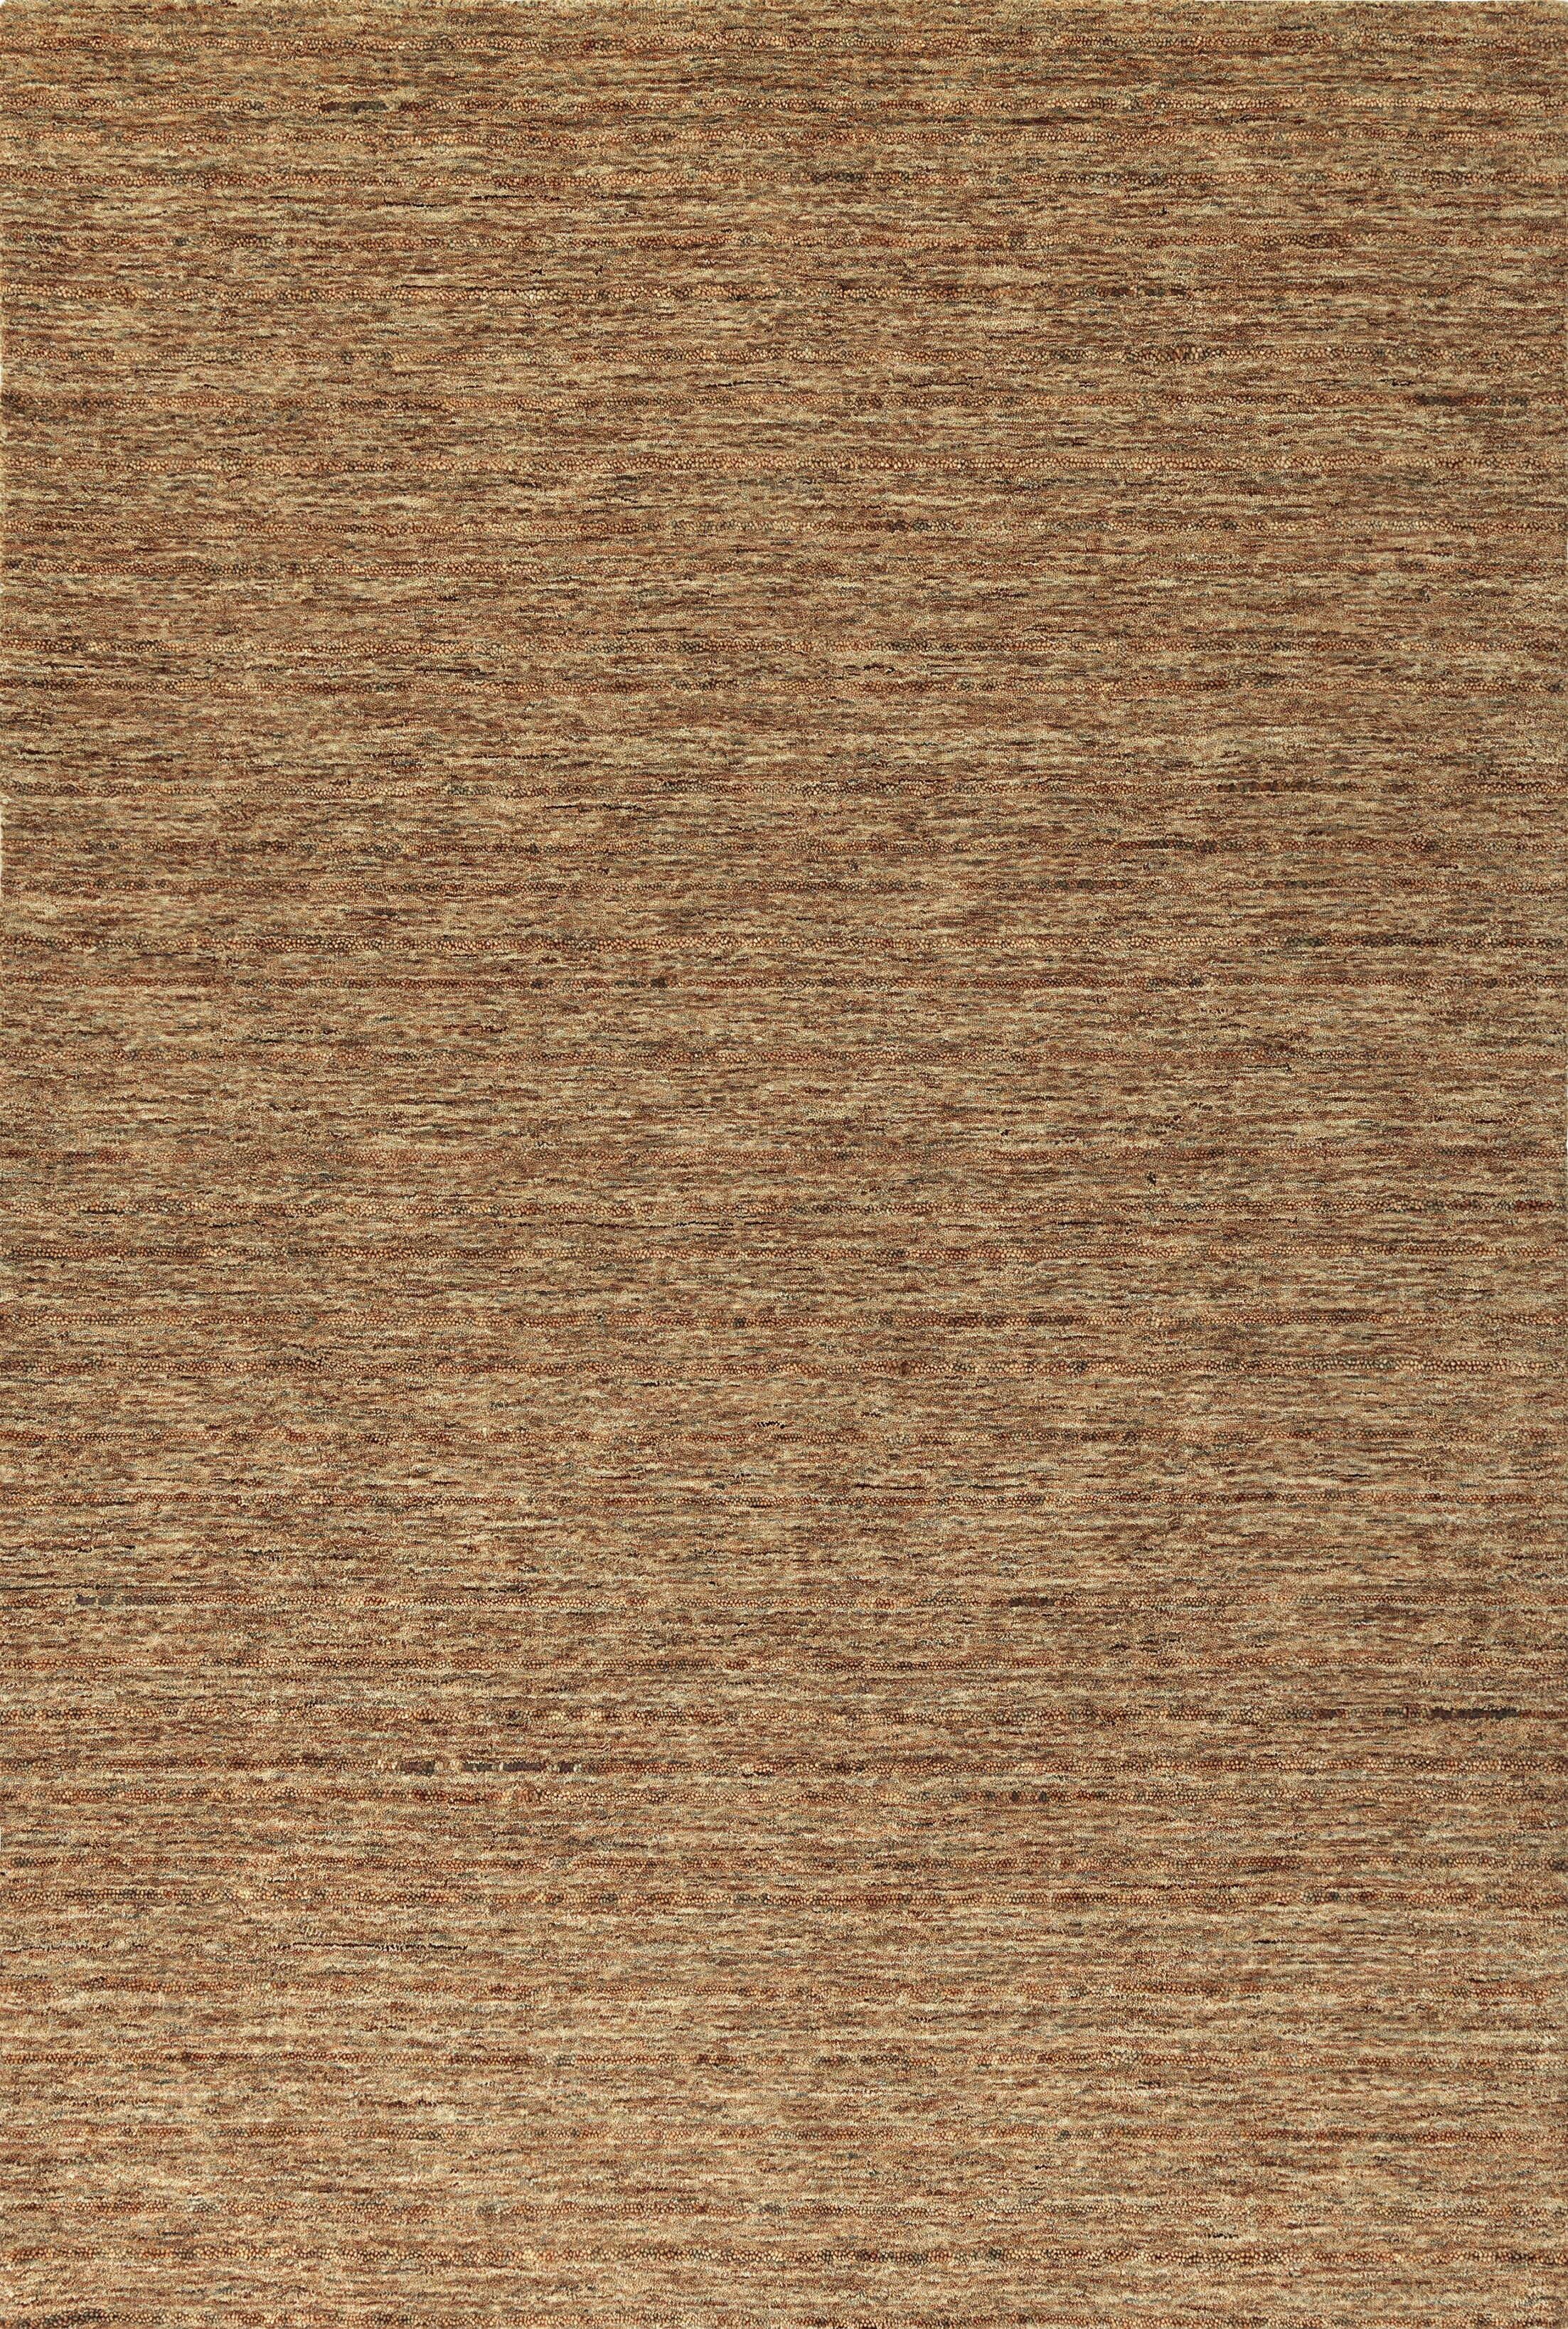 Glenville Hand-Woven Wool Sunset Area Rug Rug Size: Rectangle 3'6